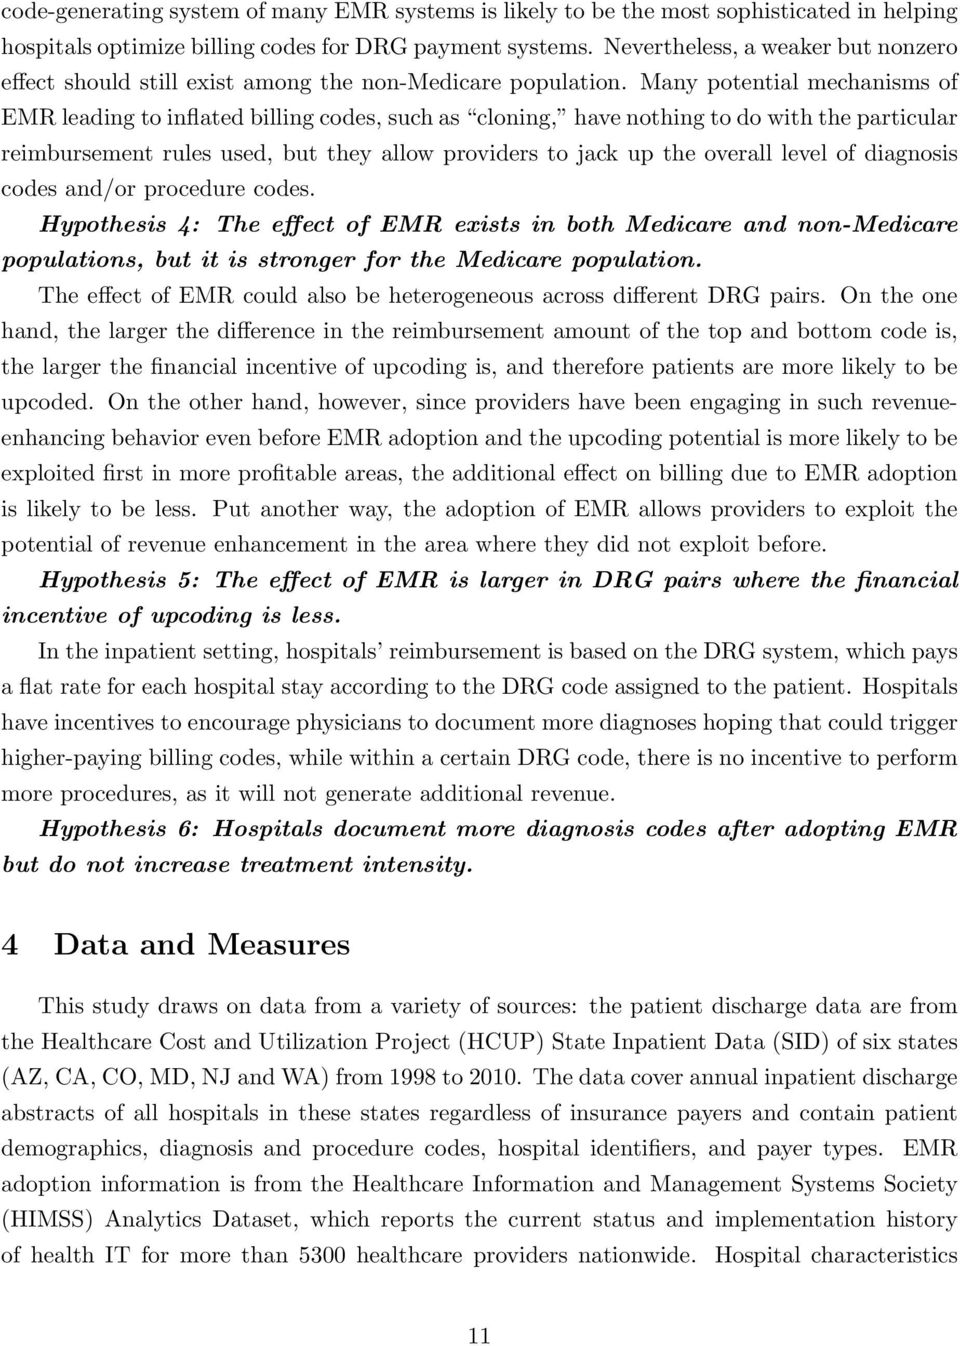 Many potential mechanisms of EMR leading to inflated billing codes, such as cloning, have nothing to do with the particular reimbursement rules used, but they allow providers to jack up the overall